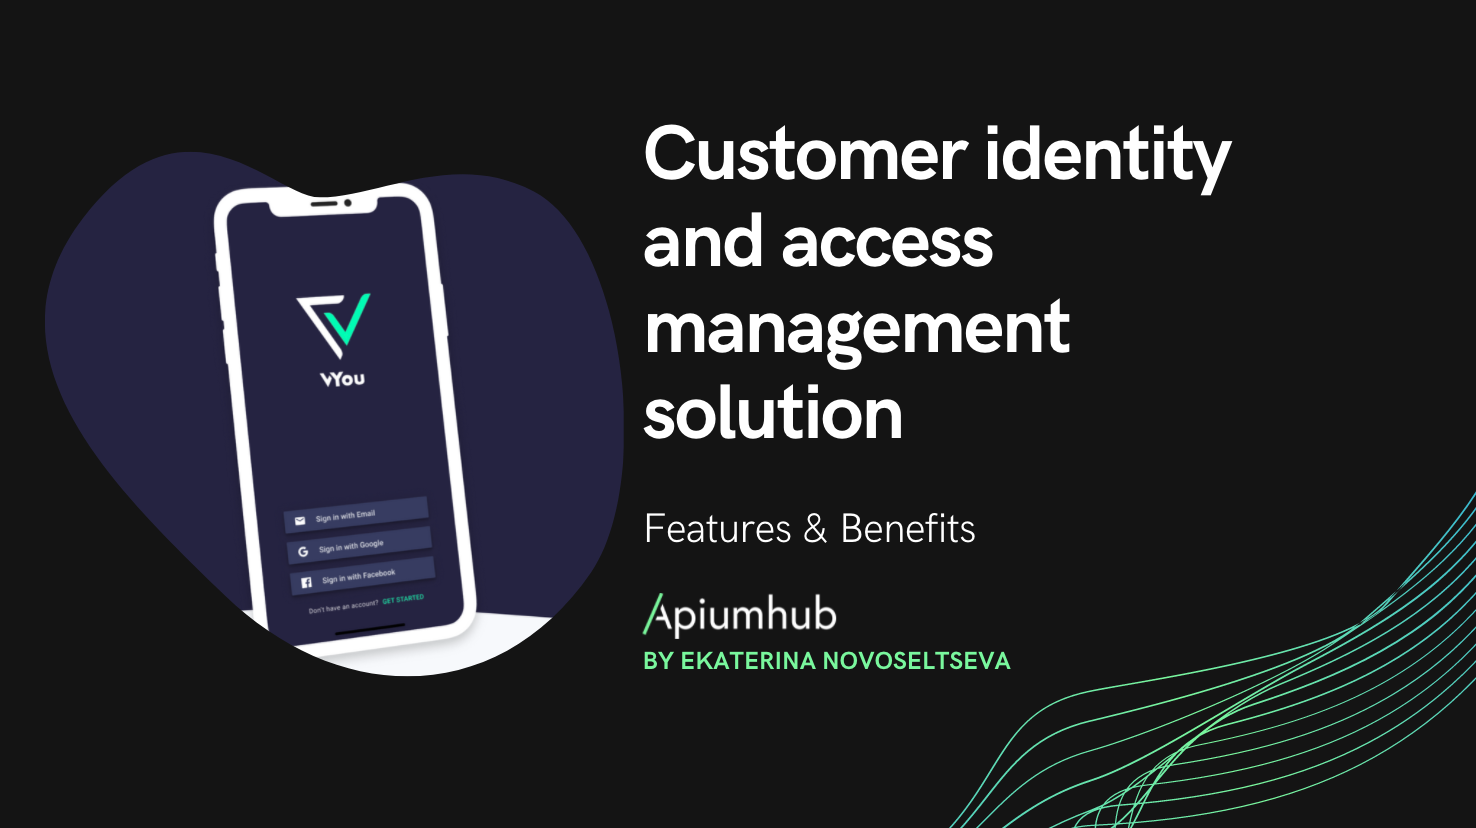 Customer identity and access management solution